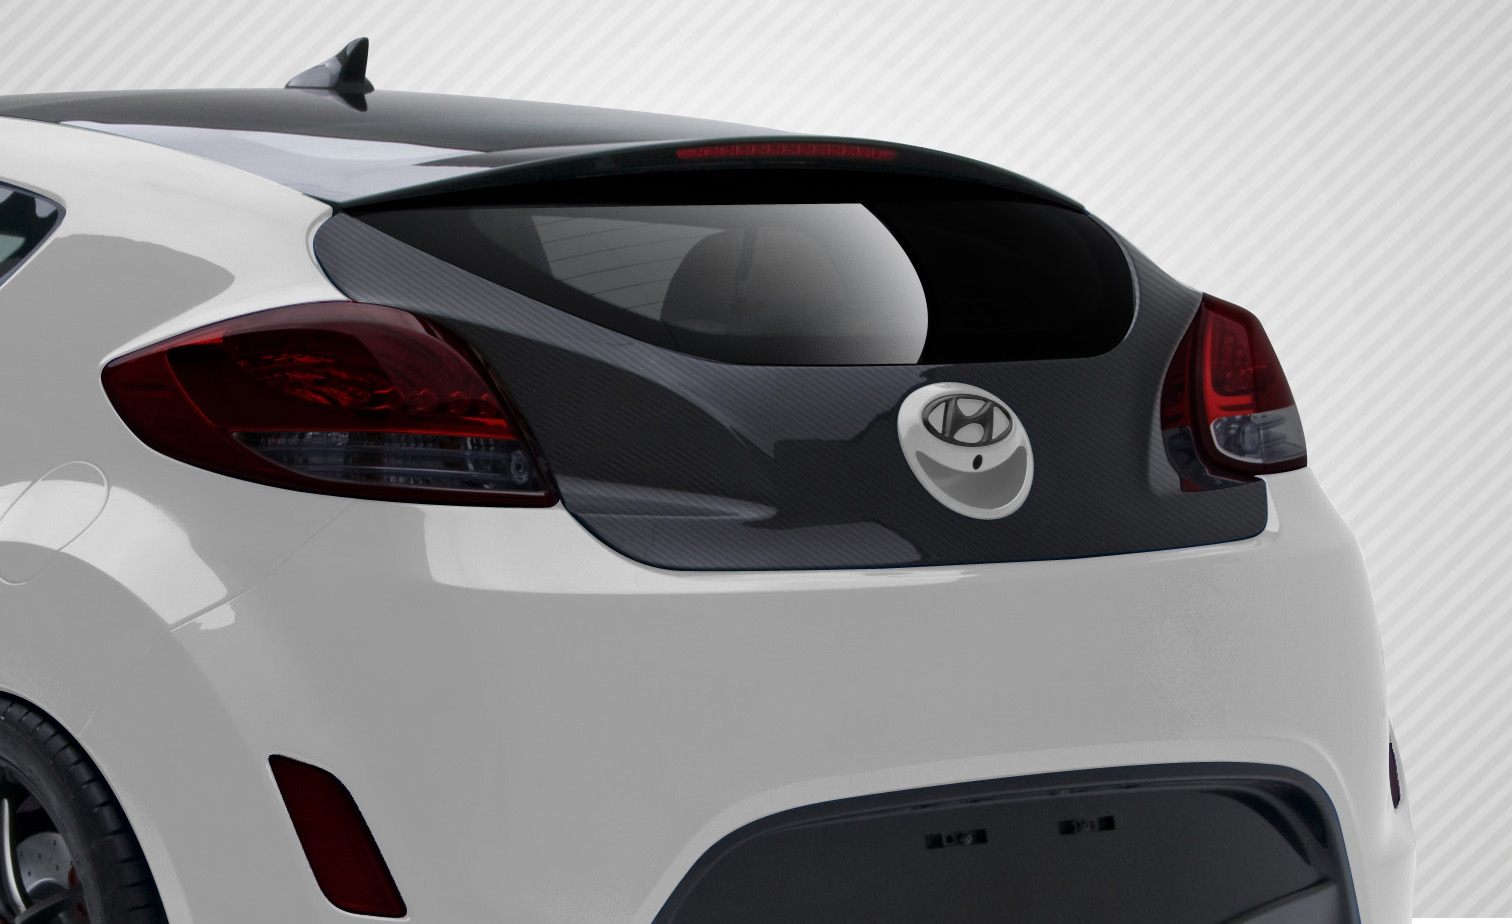 Trunk/Hatch Bodykit for 2016 Hyundai Veloster ALL - Hyundai Veloster Carbon Creations OEM Trunk - 1 Piece